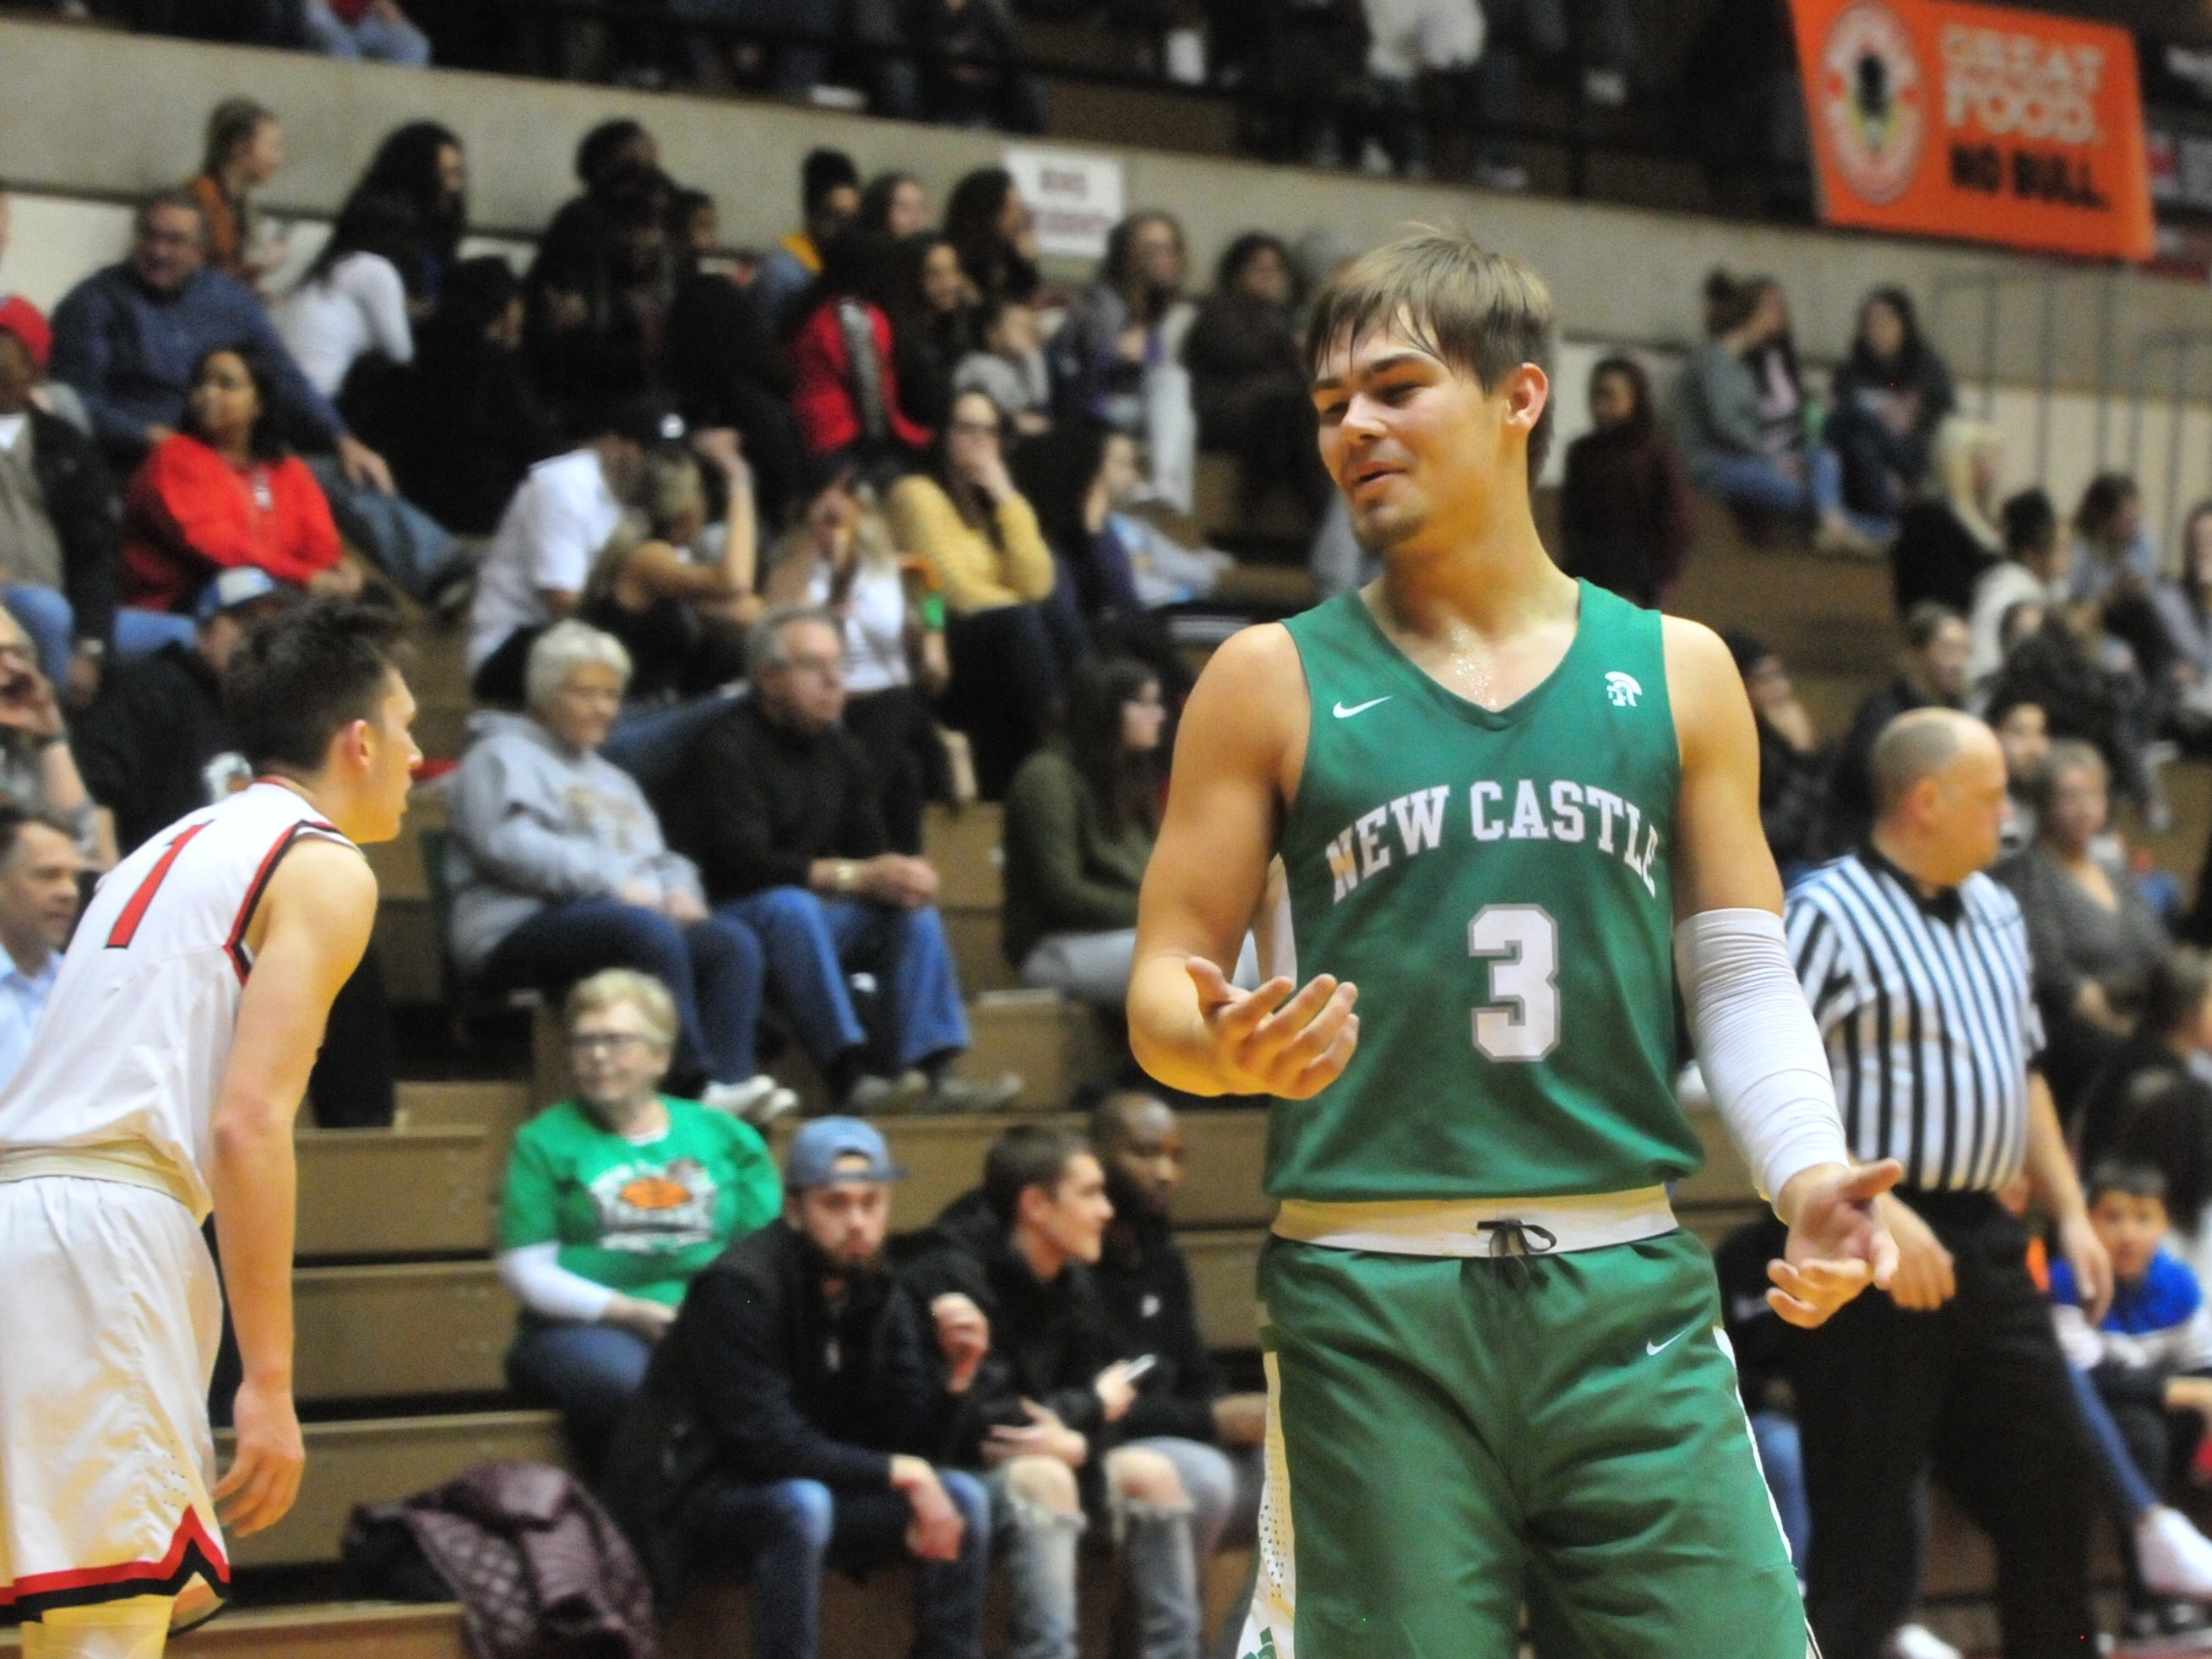 New Castle's Luke Bumbalough (3) during a boys basketball game against Richmond at Tiernan Center Friday, Jan. 4, 2019.